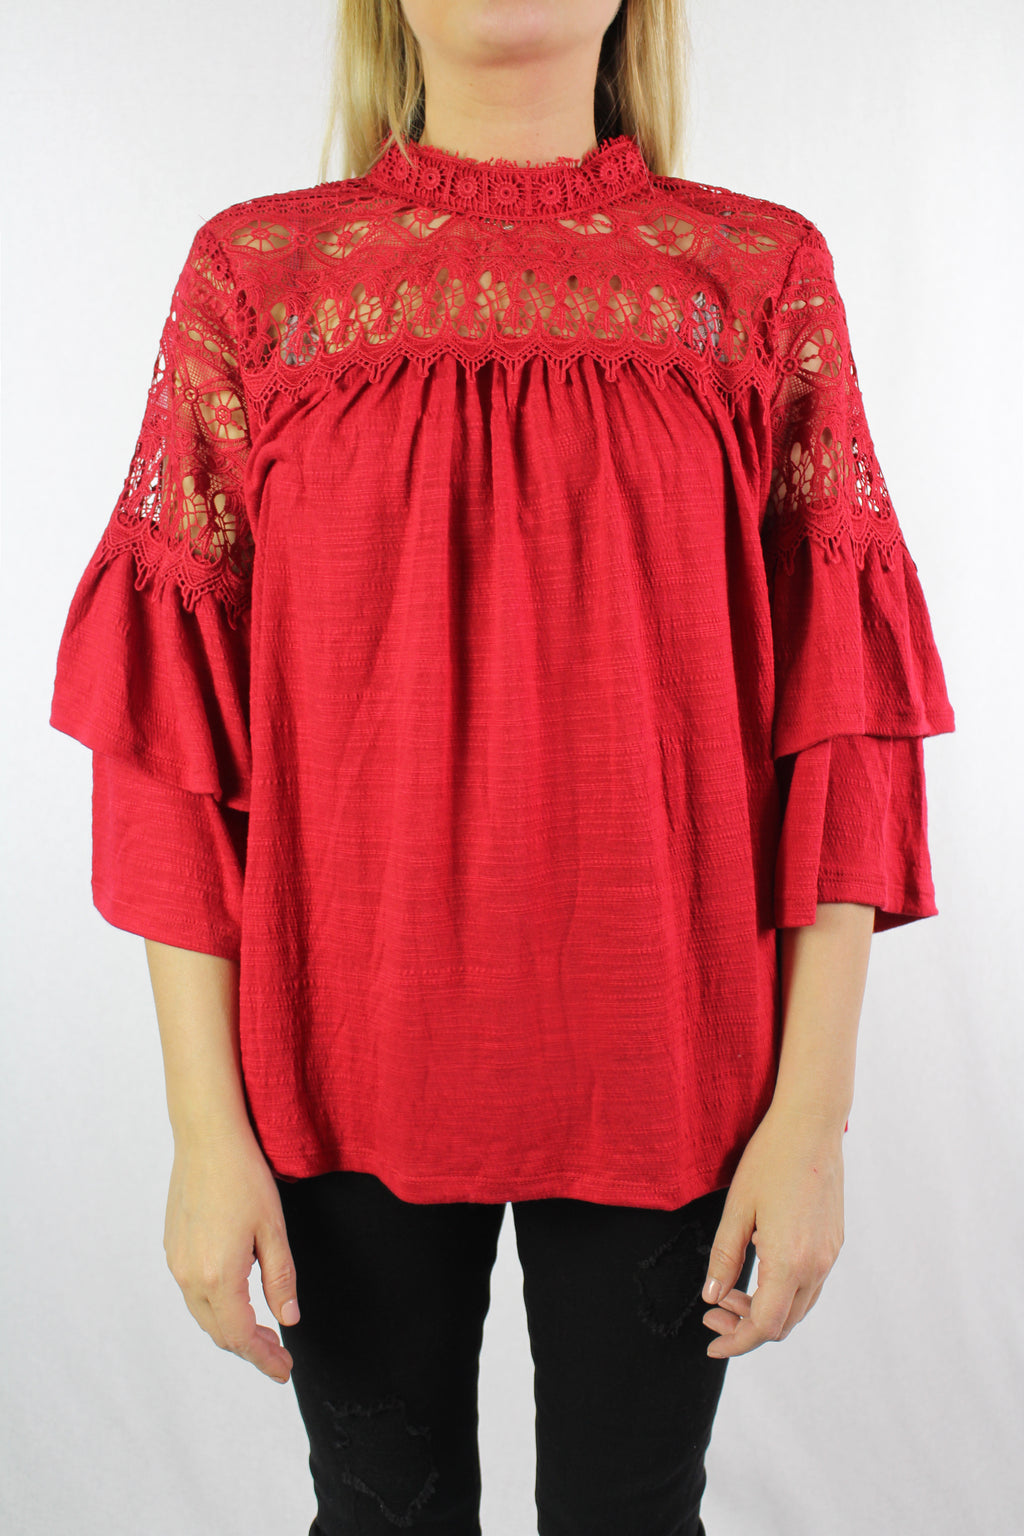 Women's 3/4th Layered Sleeve Crochet Top